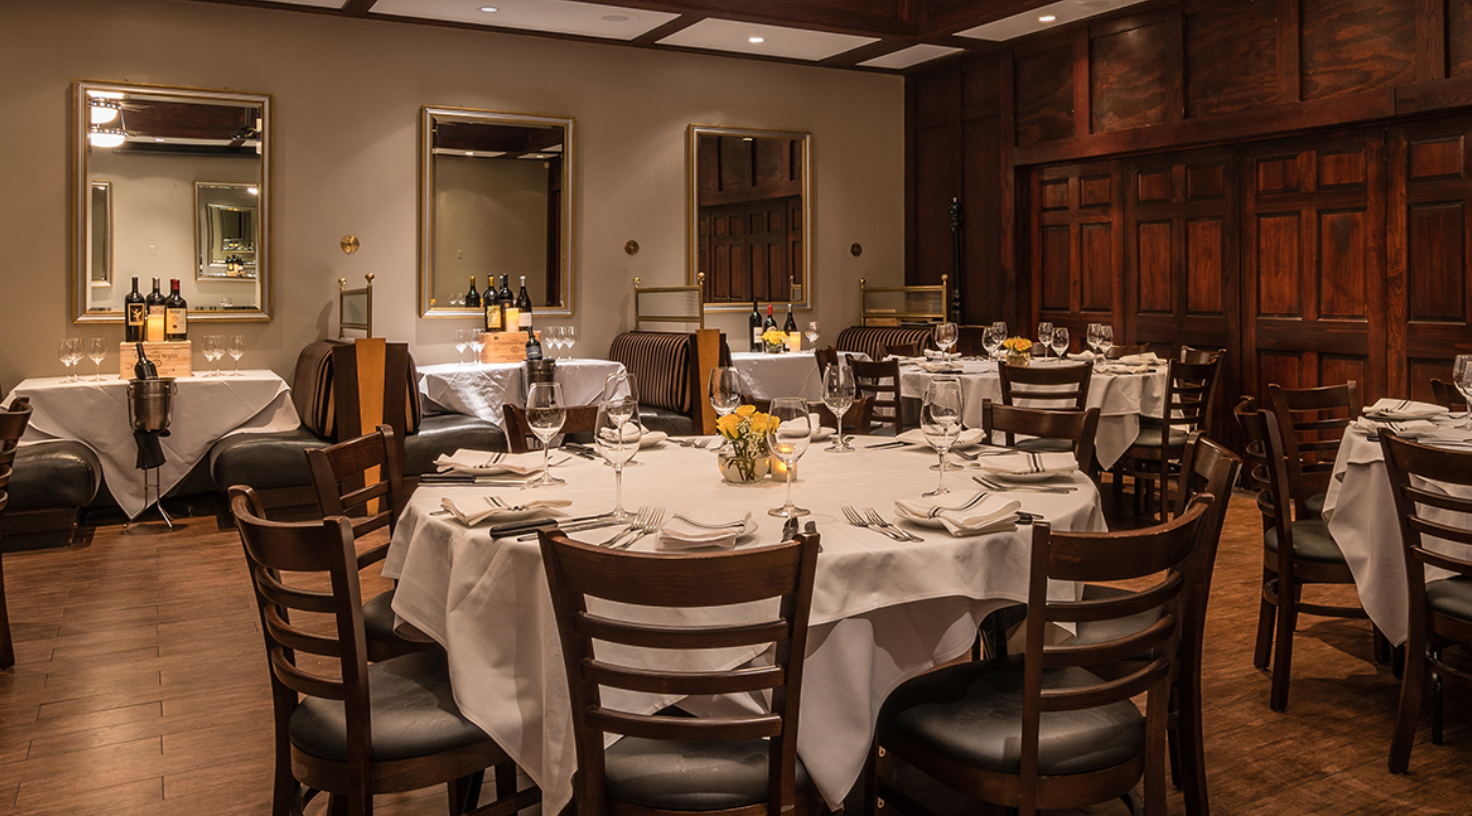 chamberlains best steakhouse corporate events dallas texas